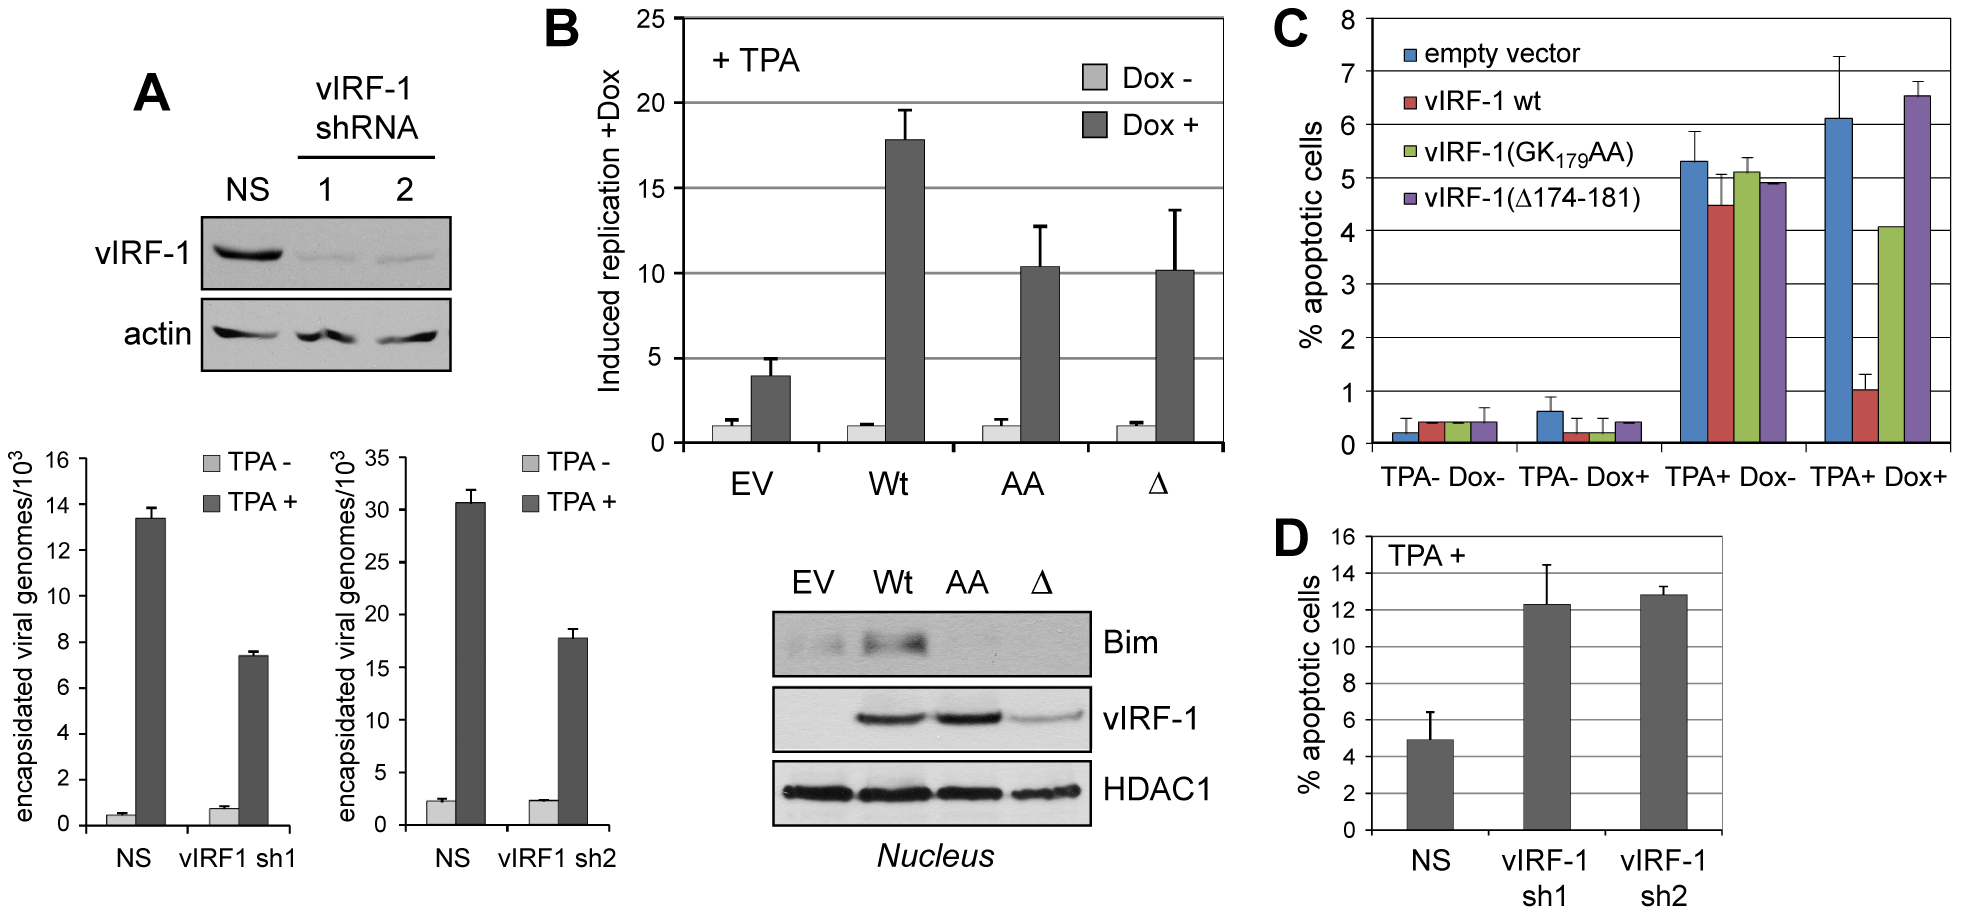 vIRF-1 function and significance of vIRF-1:Bim interaction in the context of virus infection.